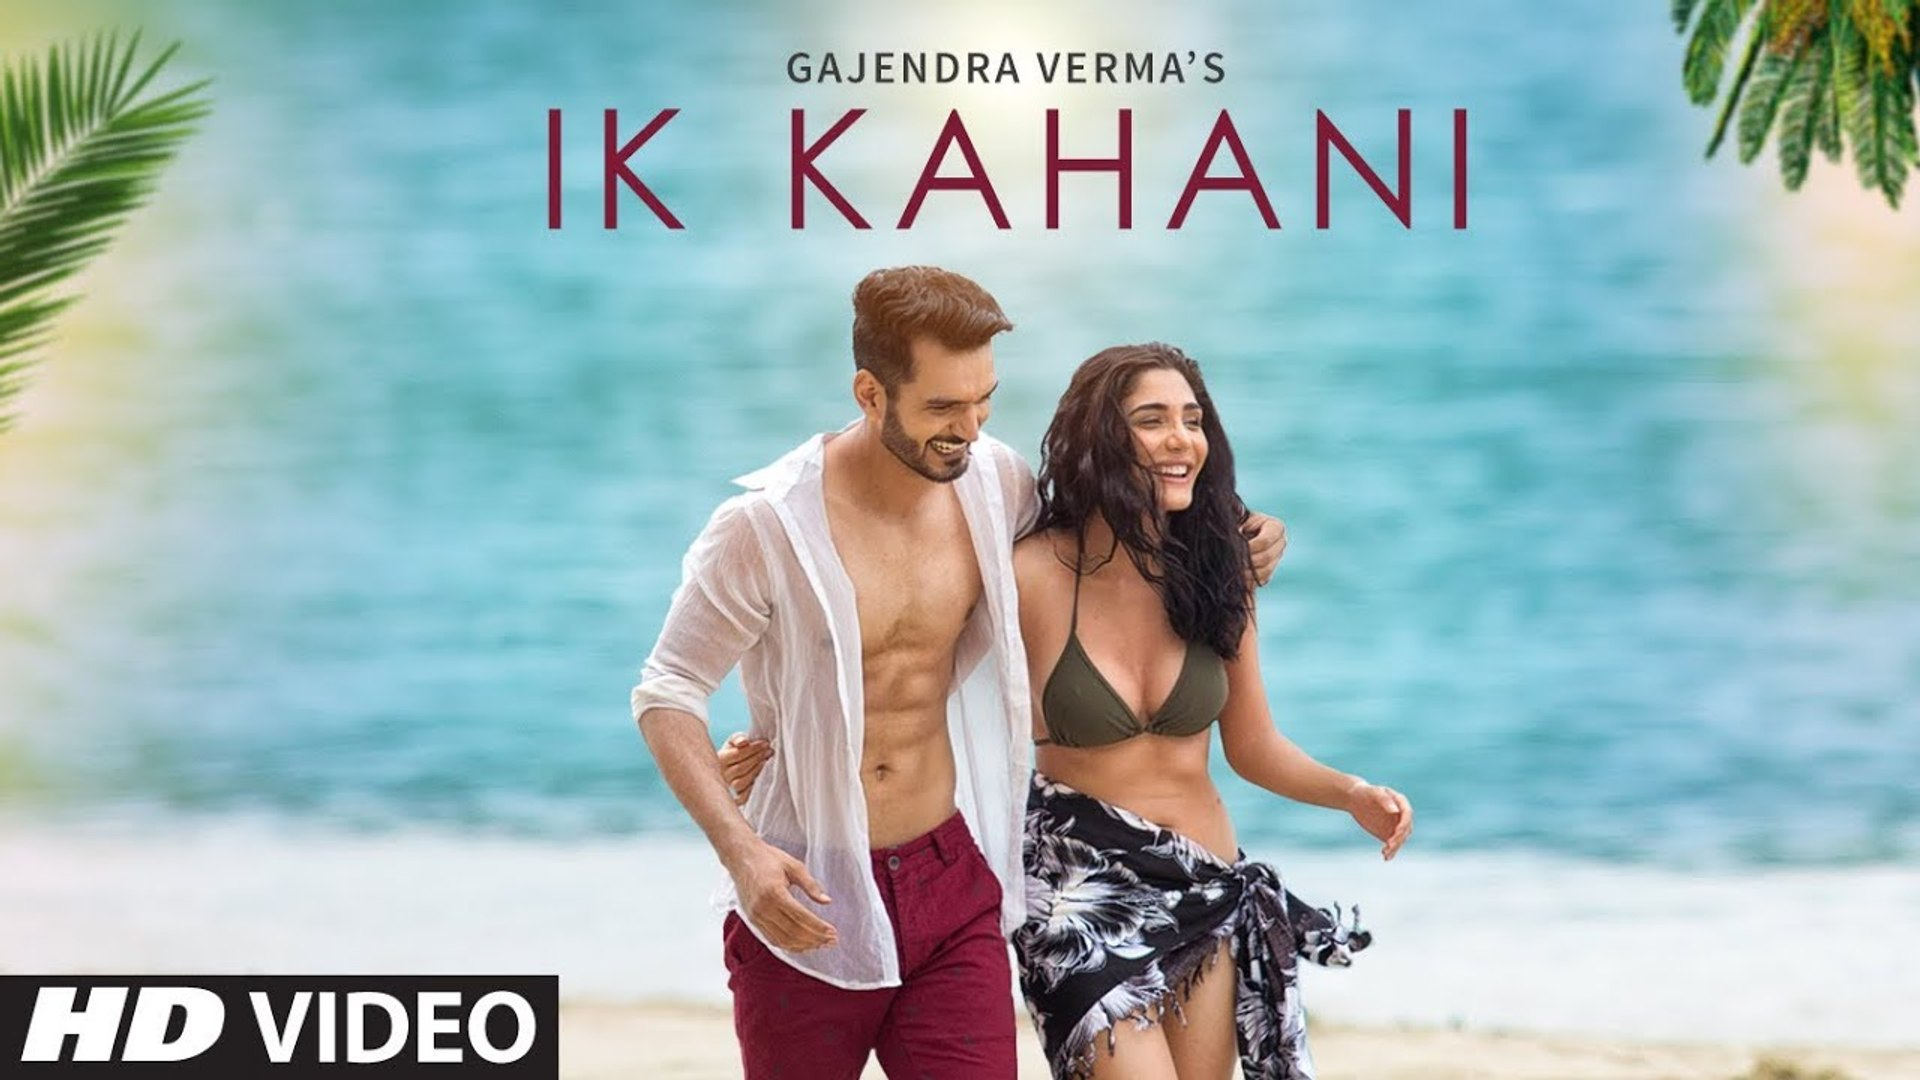 Hd Wallpapers Pictures   Ik Kahani Song Gajendra Verma Hd 1920x1080